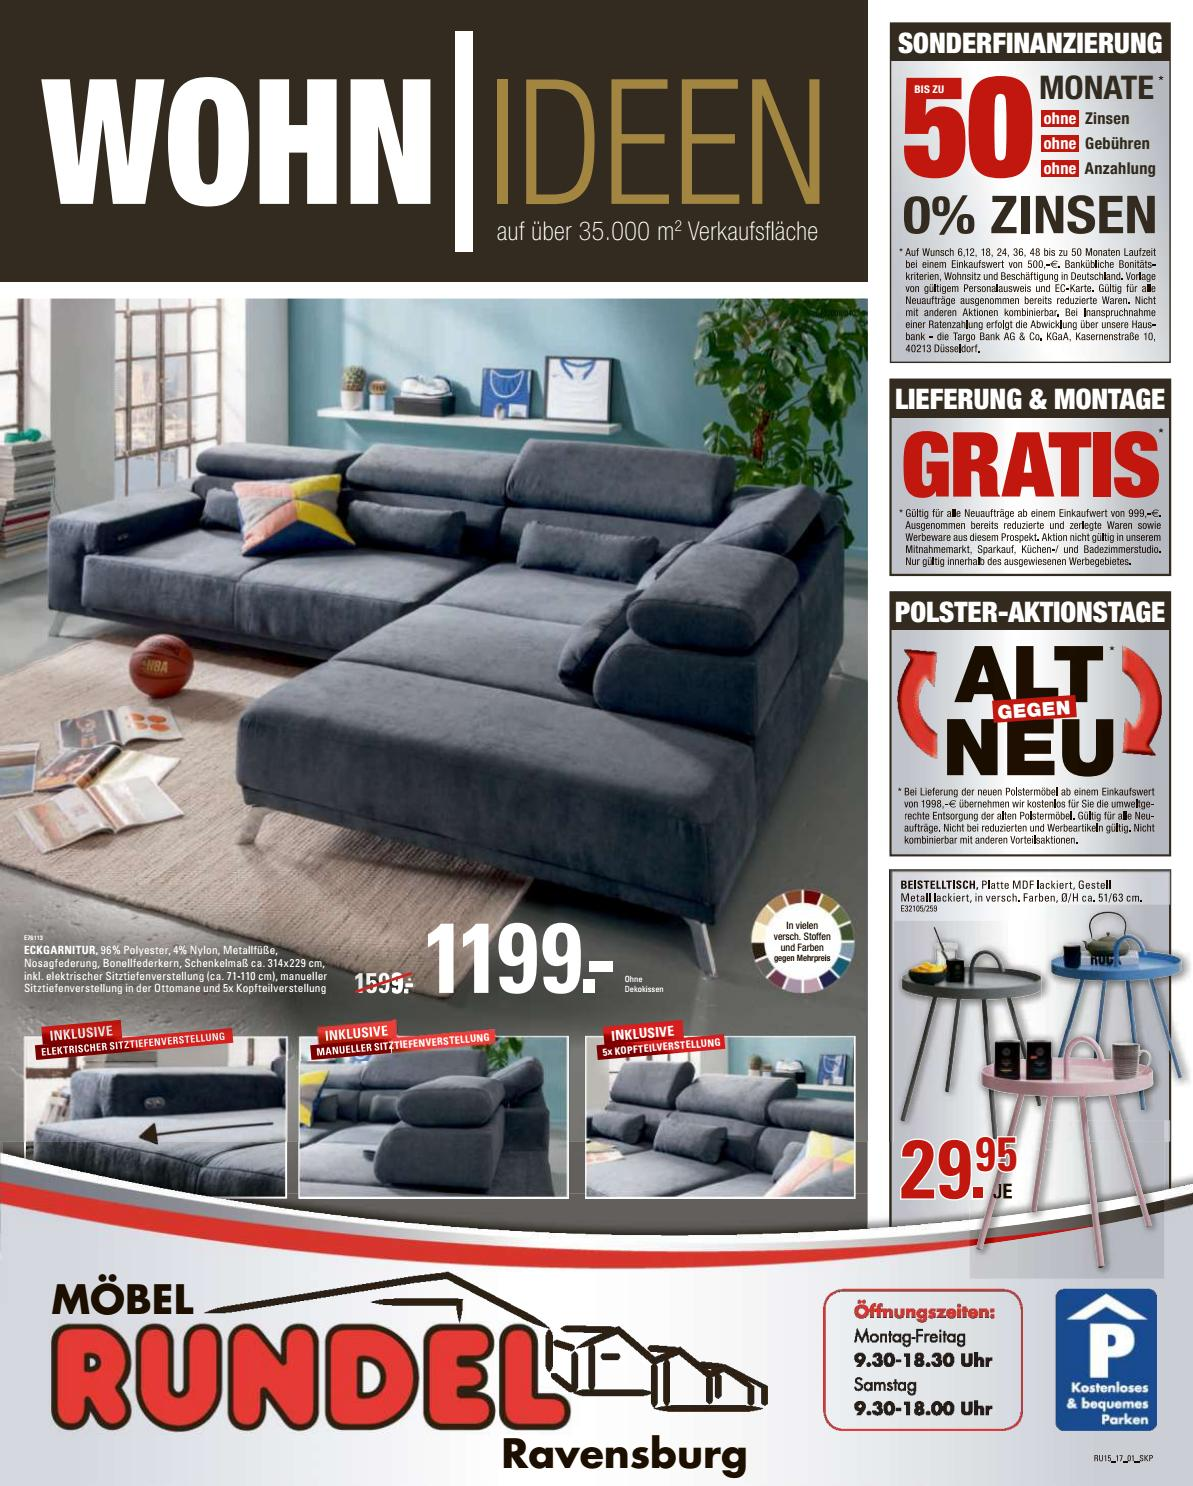 moebel rundel kw15 by russmedia digital gmbh issuu. Black Bedroom Furniture Sets. Home Design Ideas